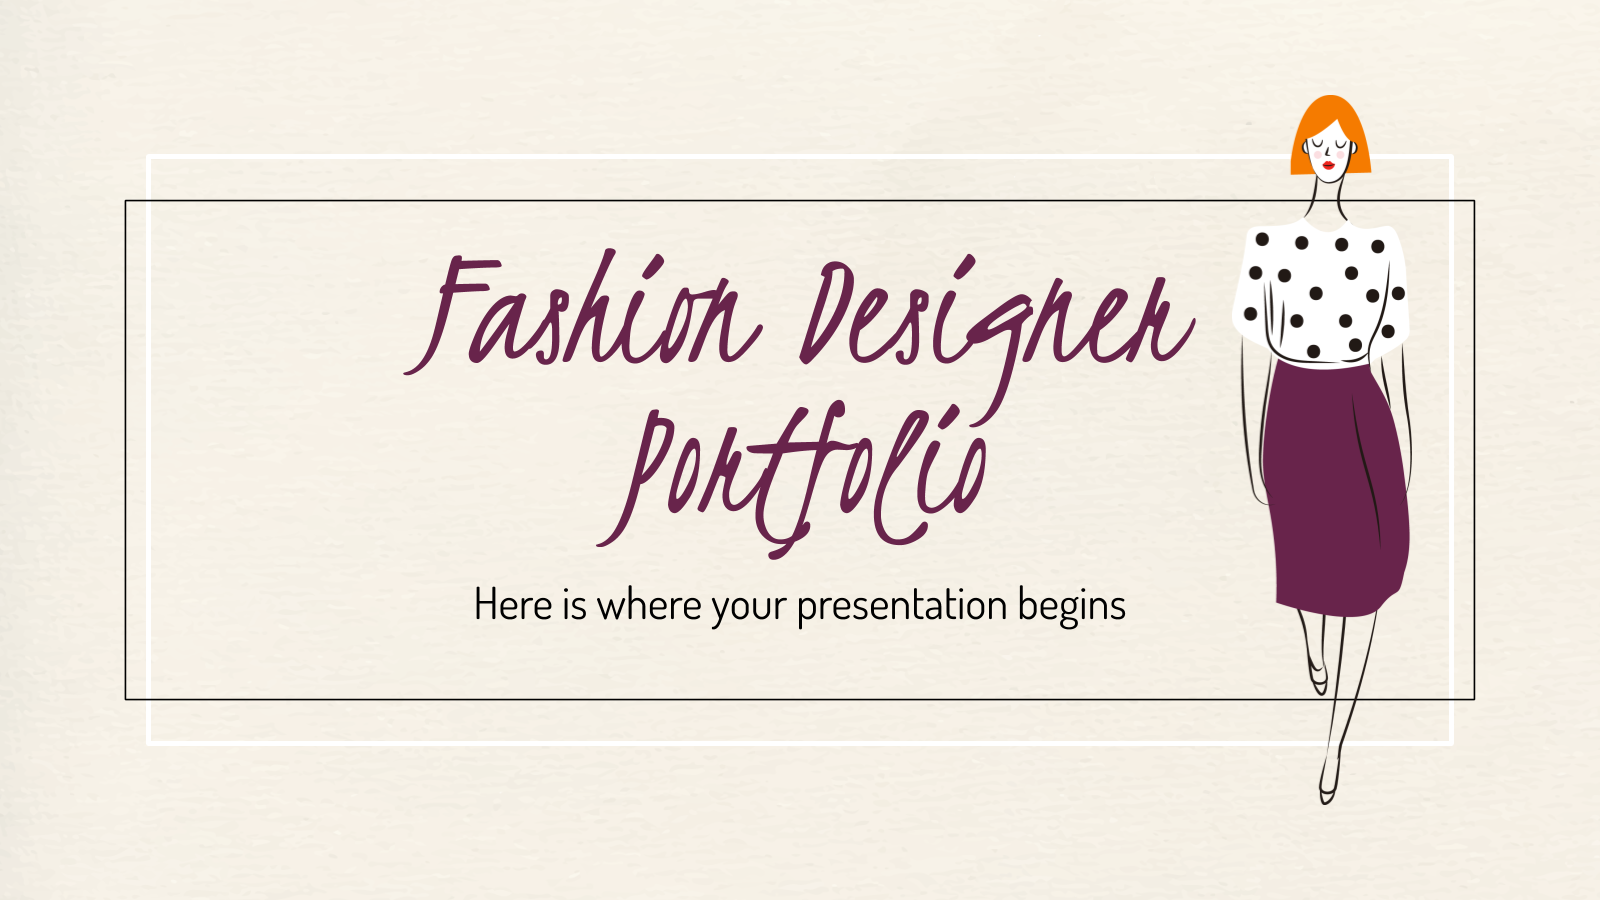 Fashion Designer Portfolio presentation template